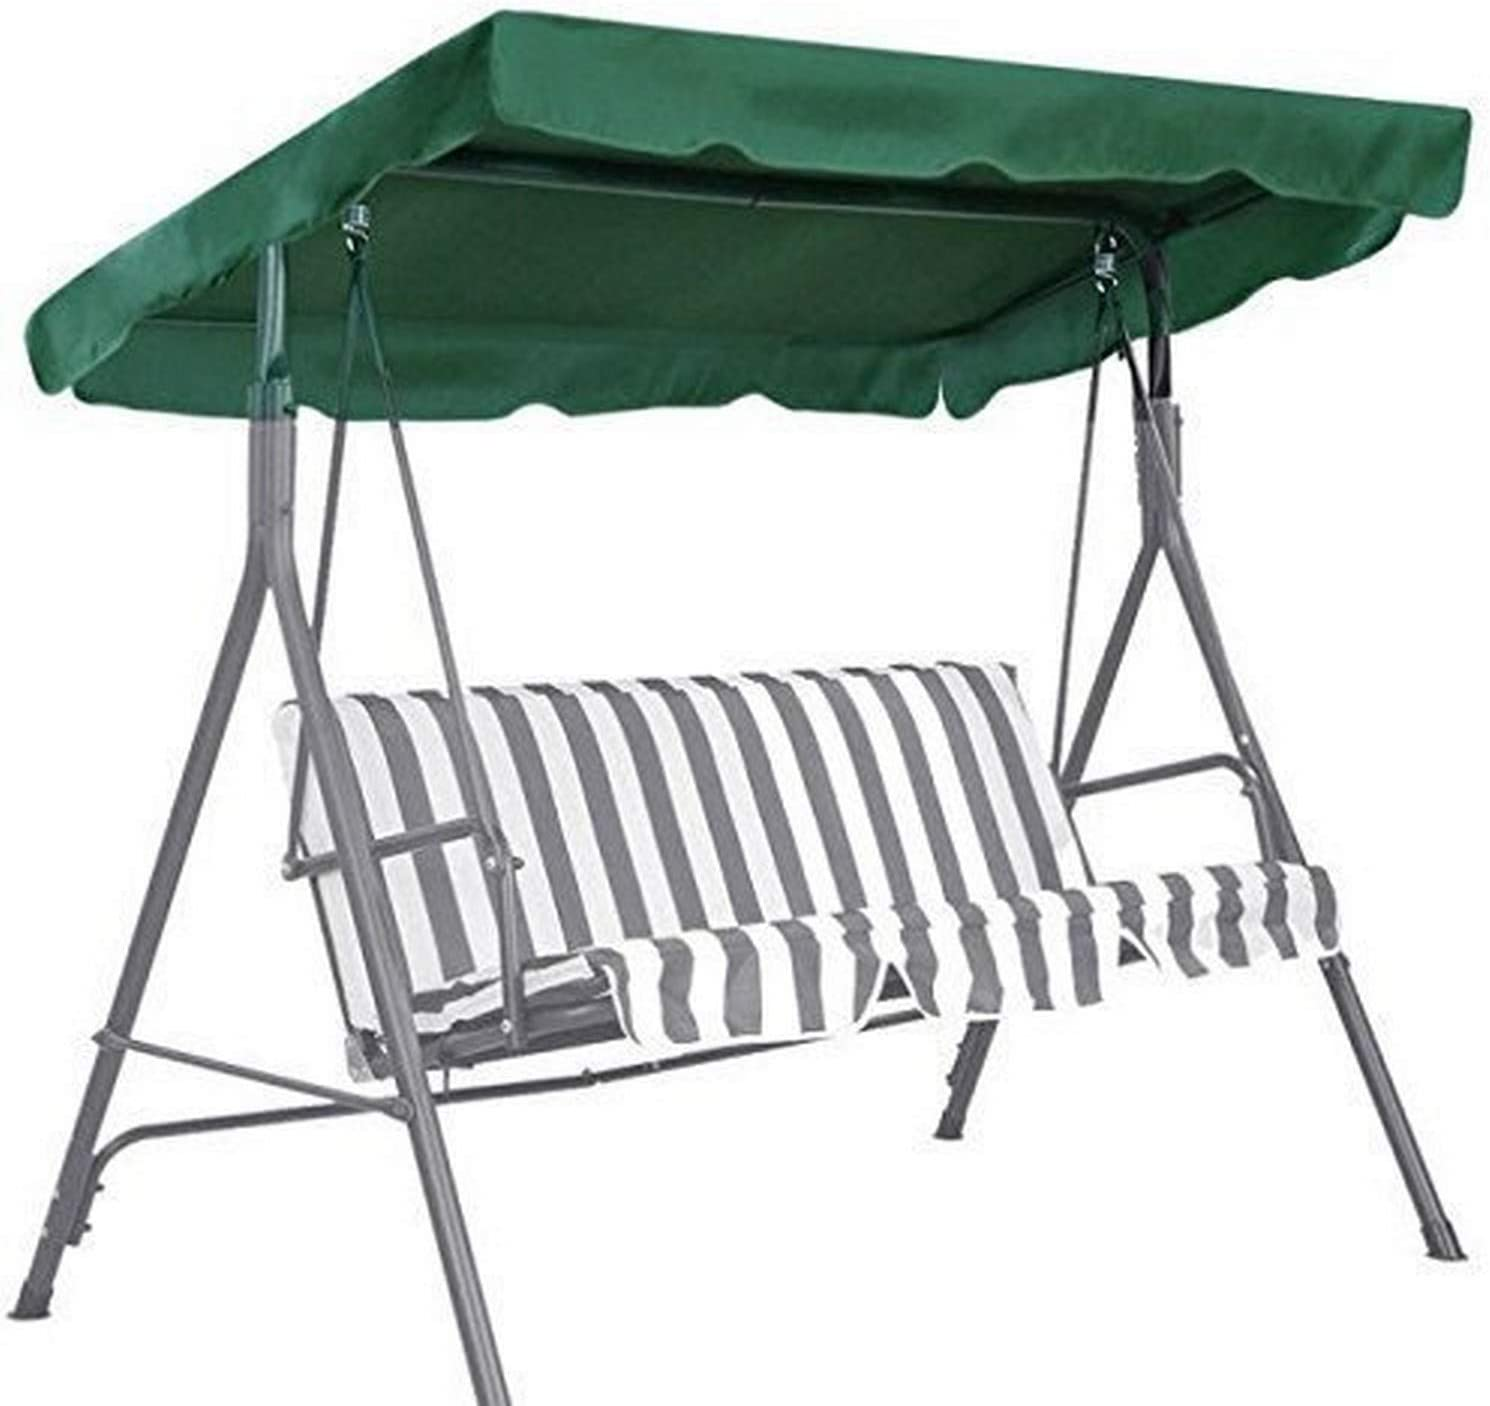 BenefitUSA Patio Outdoor Swing Canopy Replacement Porch Top Cover Seat Furniture, Green